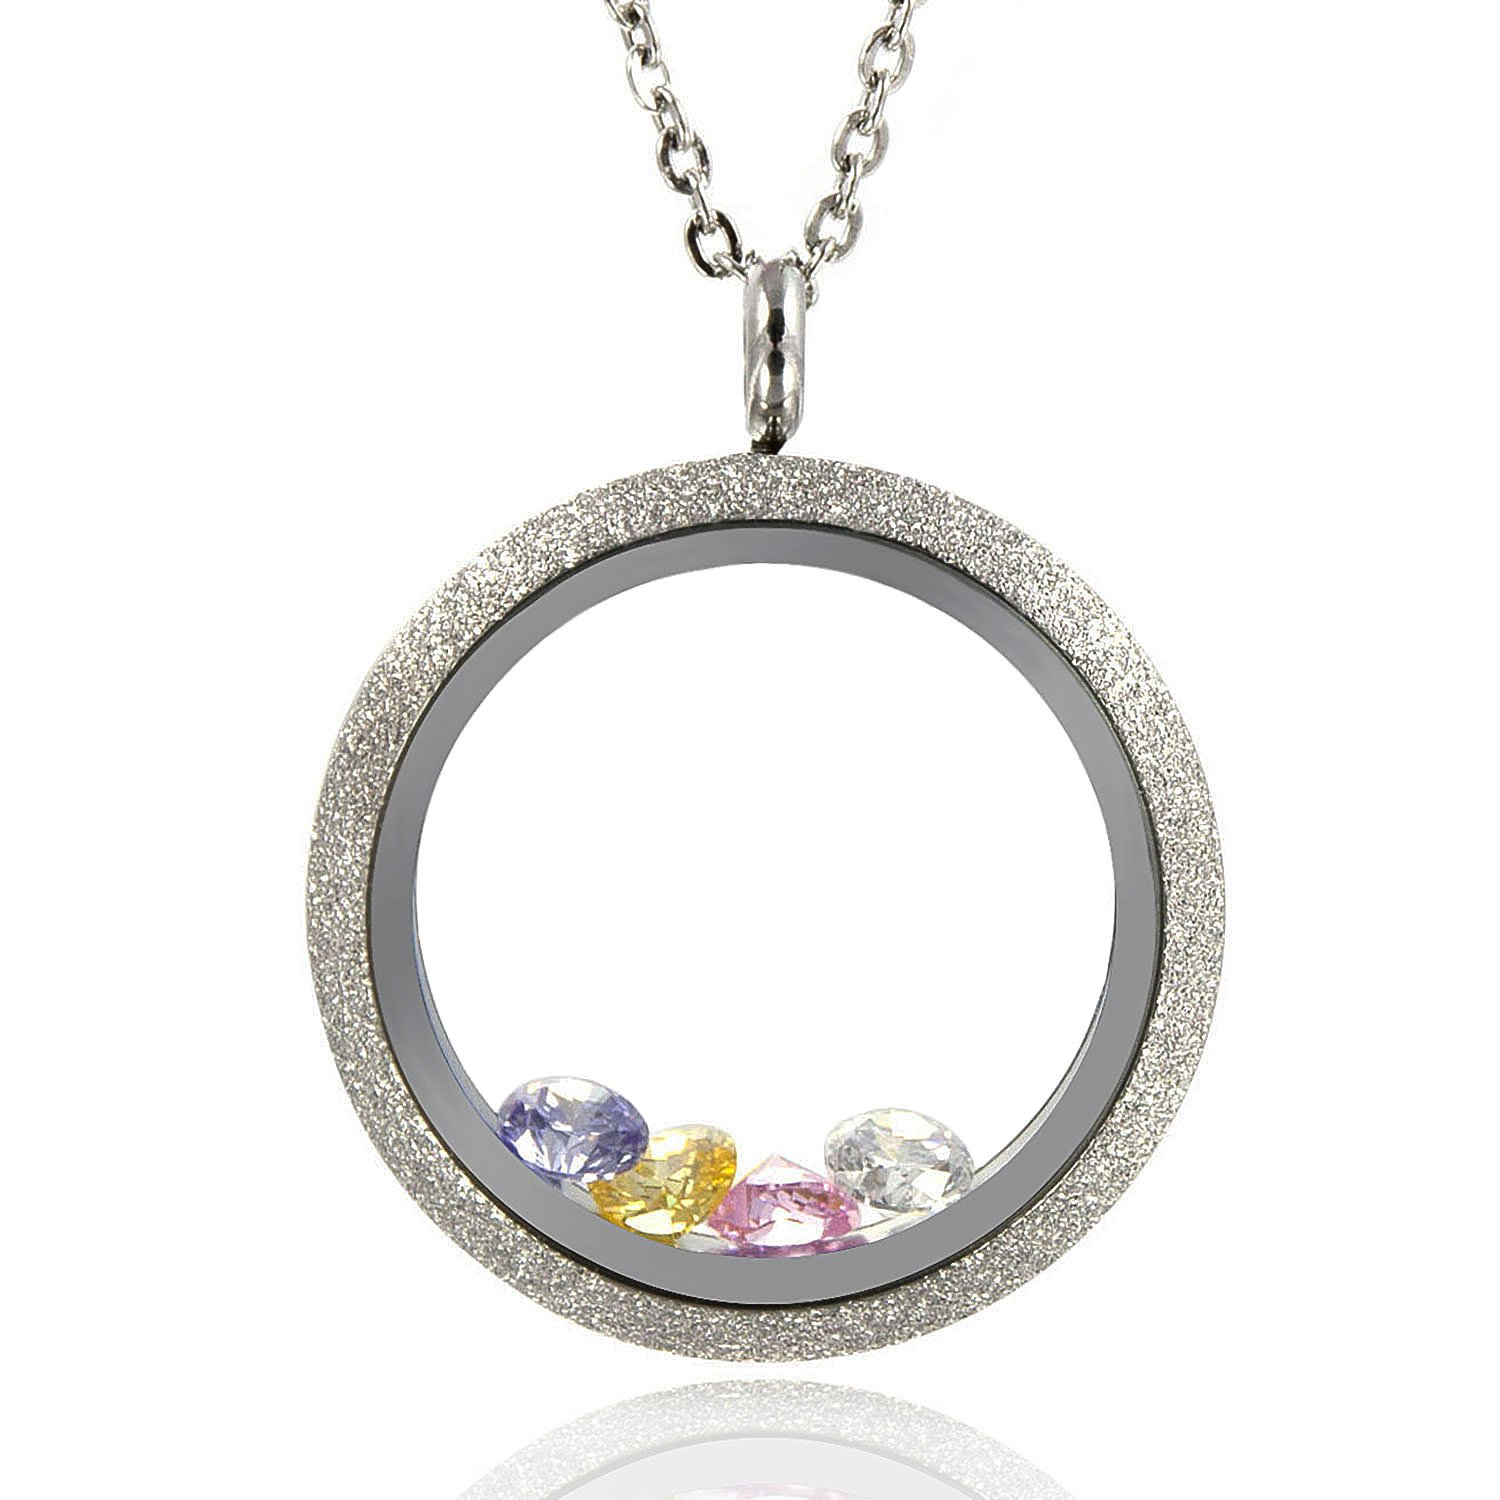 EVERLEAD Sparkle Floating Locket Twist Stainless Steel Waterproof Including Chains and Colorful Zircon Everlead Inc CLP065S25-C011S55